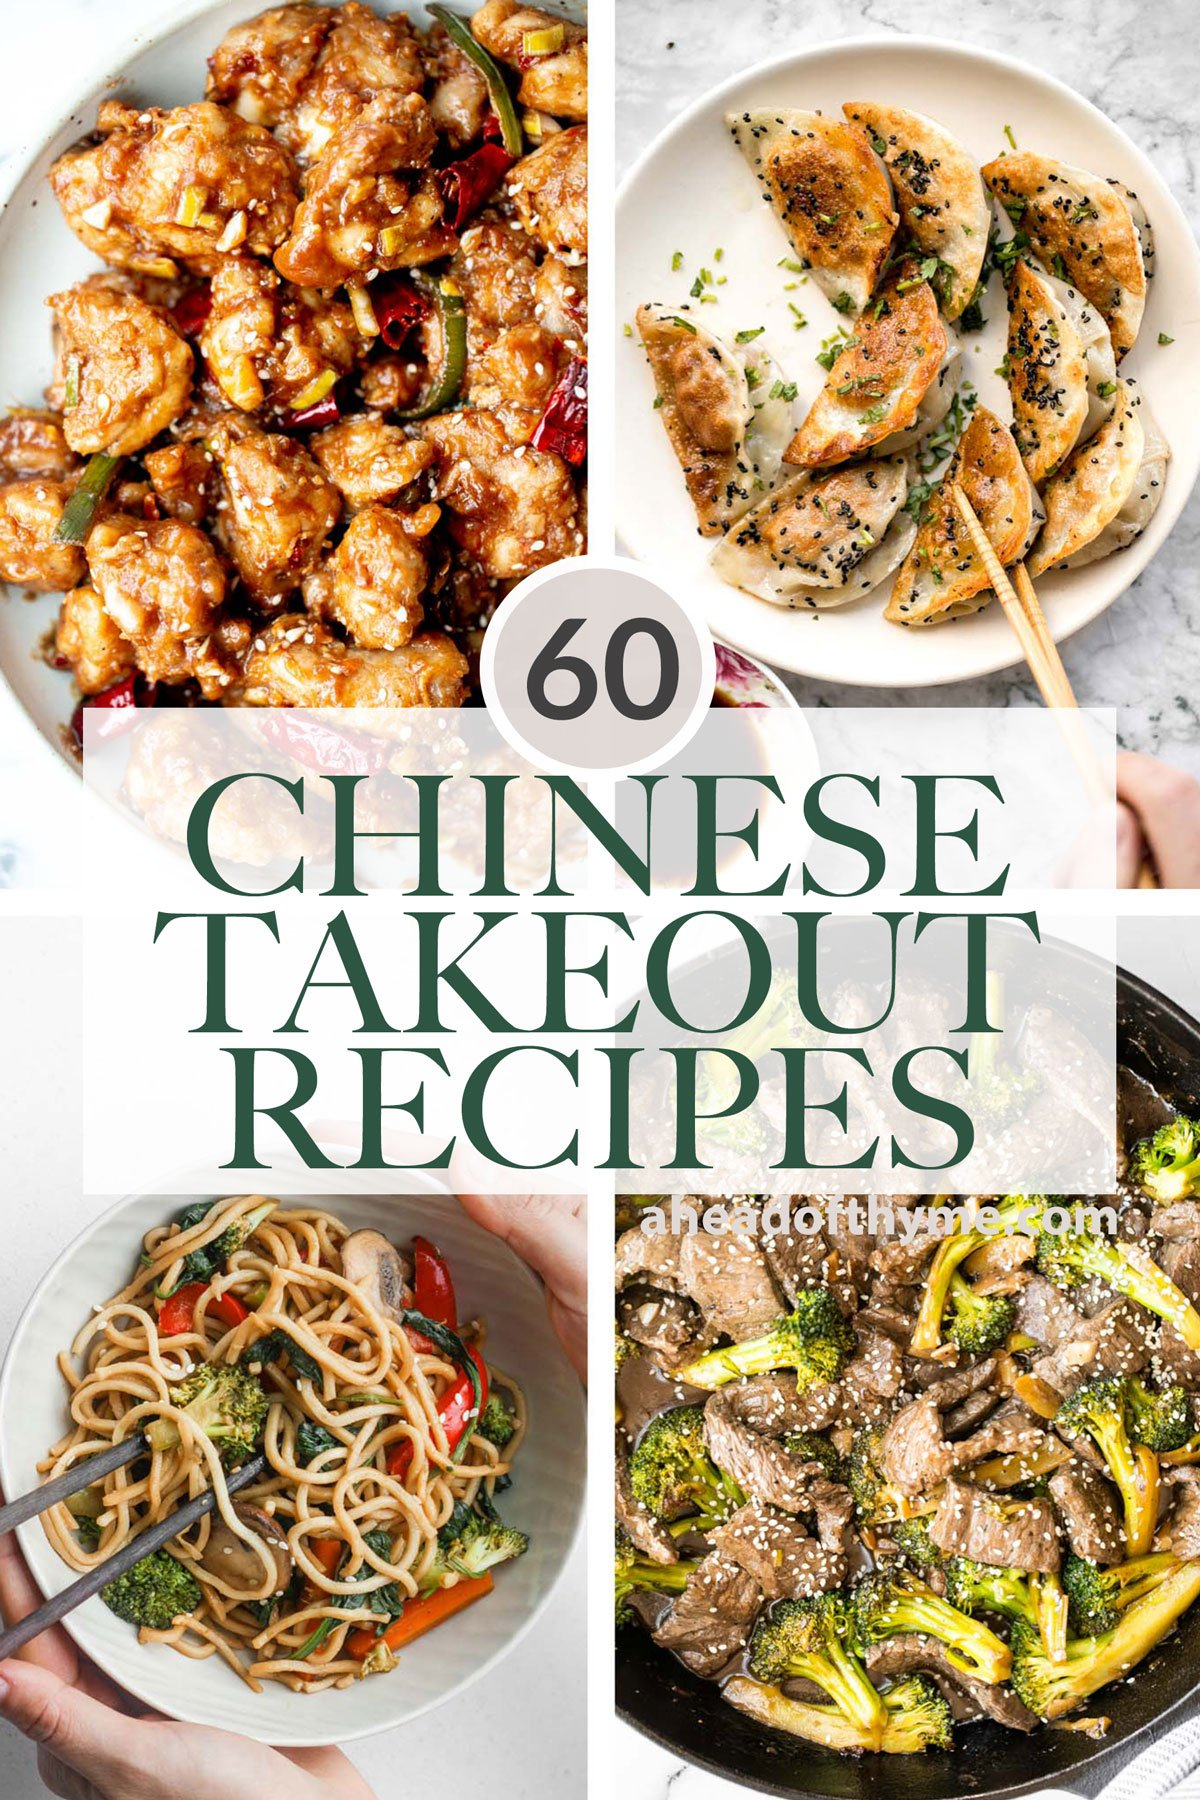 60 Chinese Takeout Recipes at Home